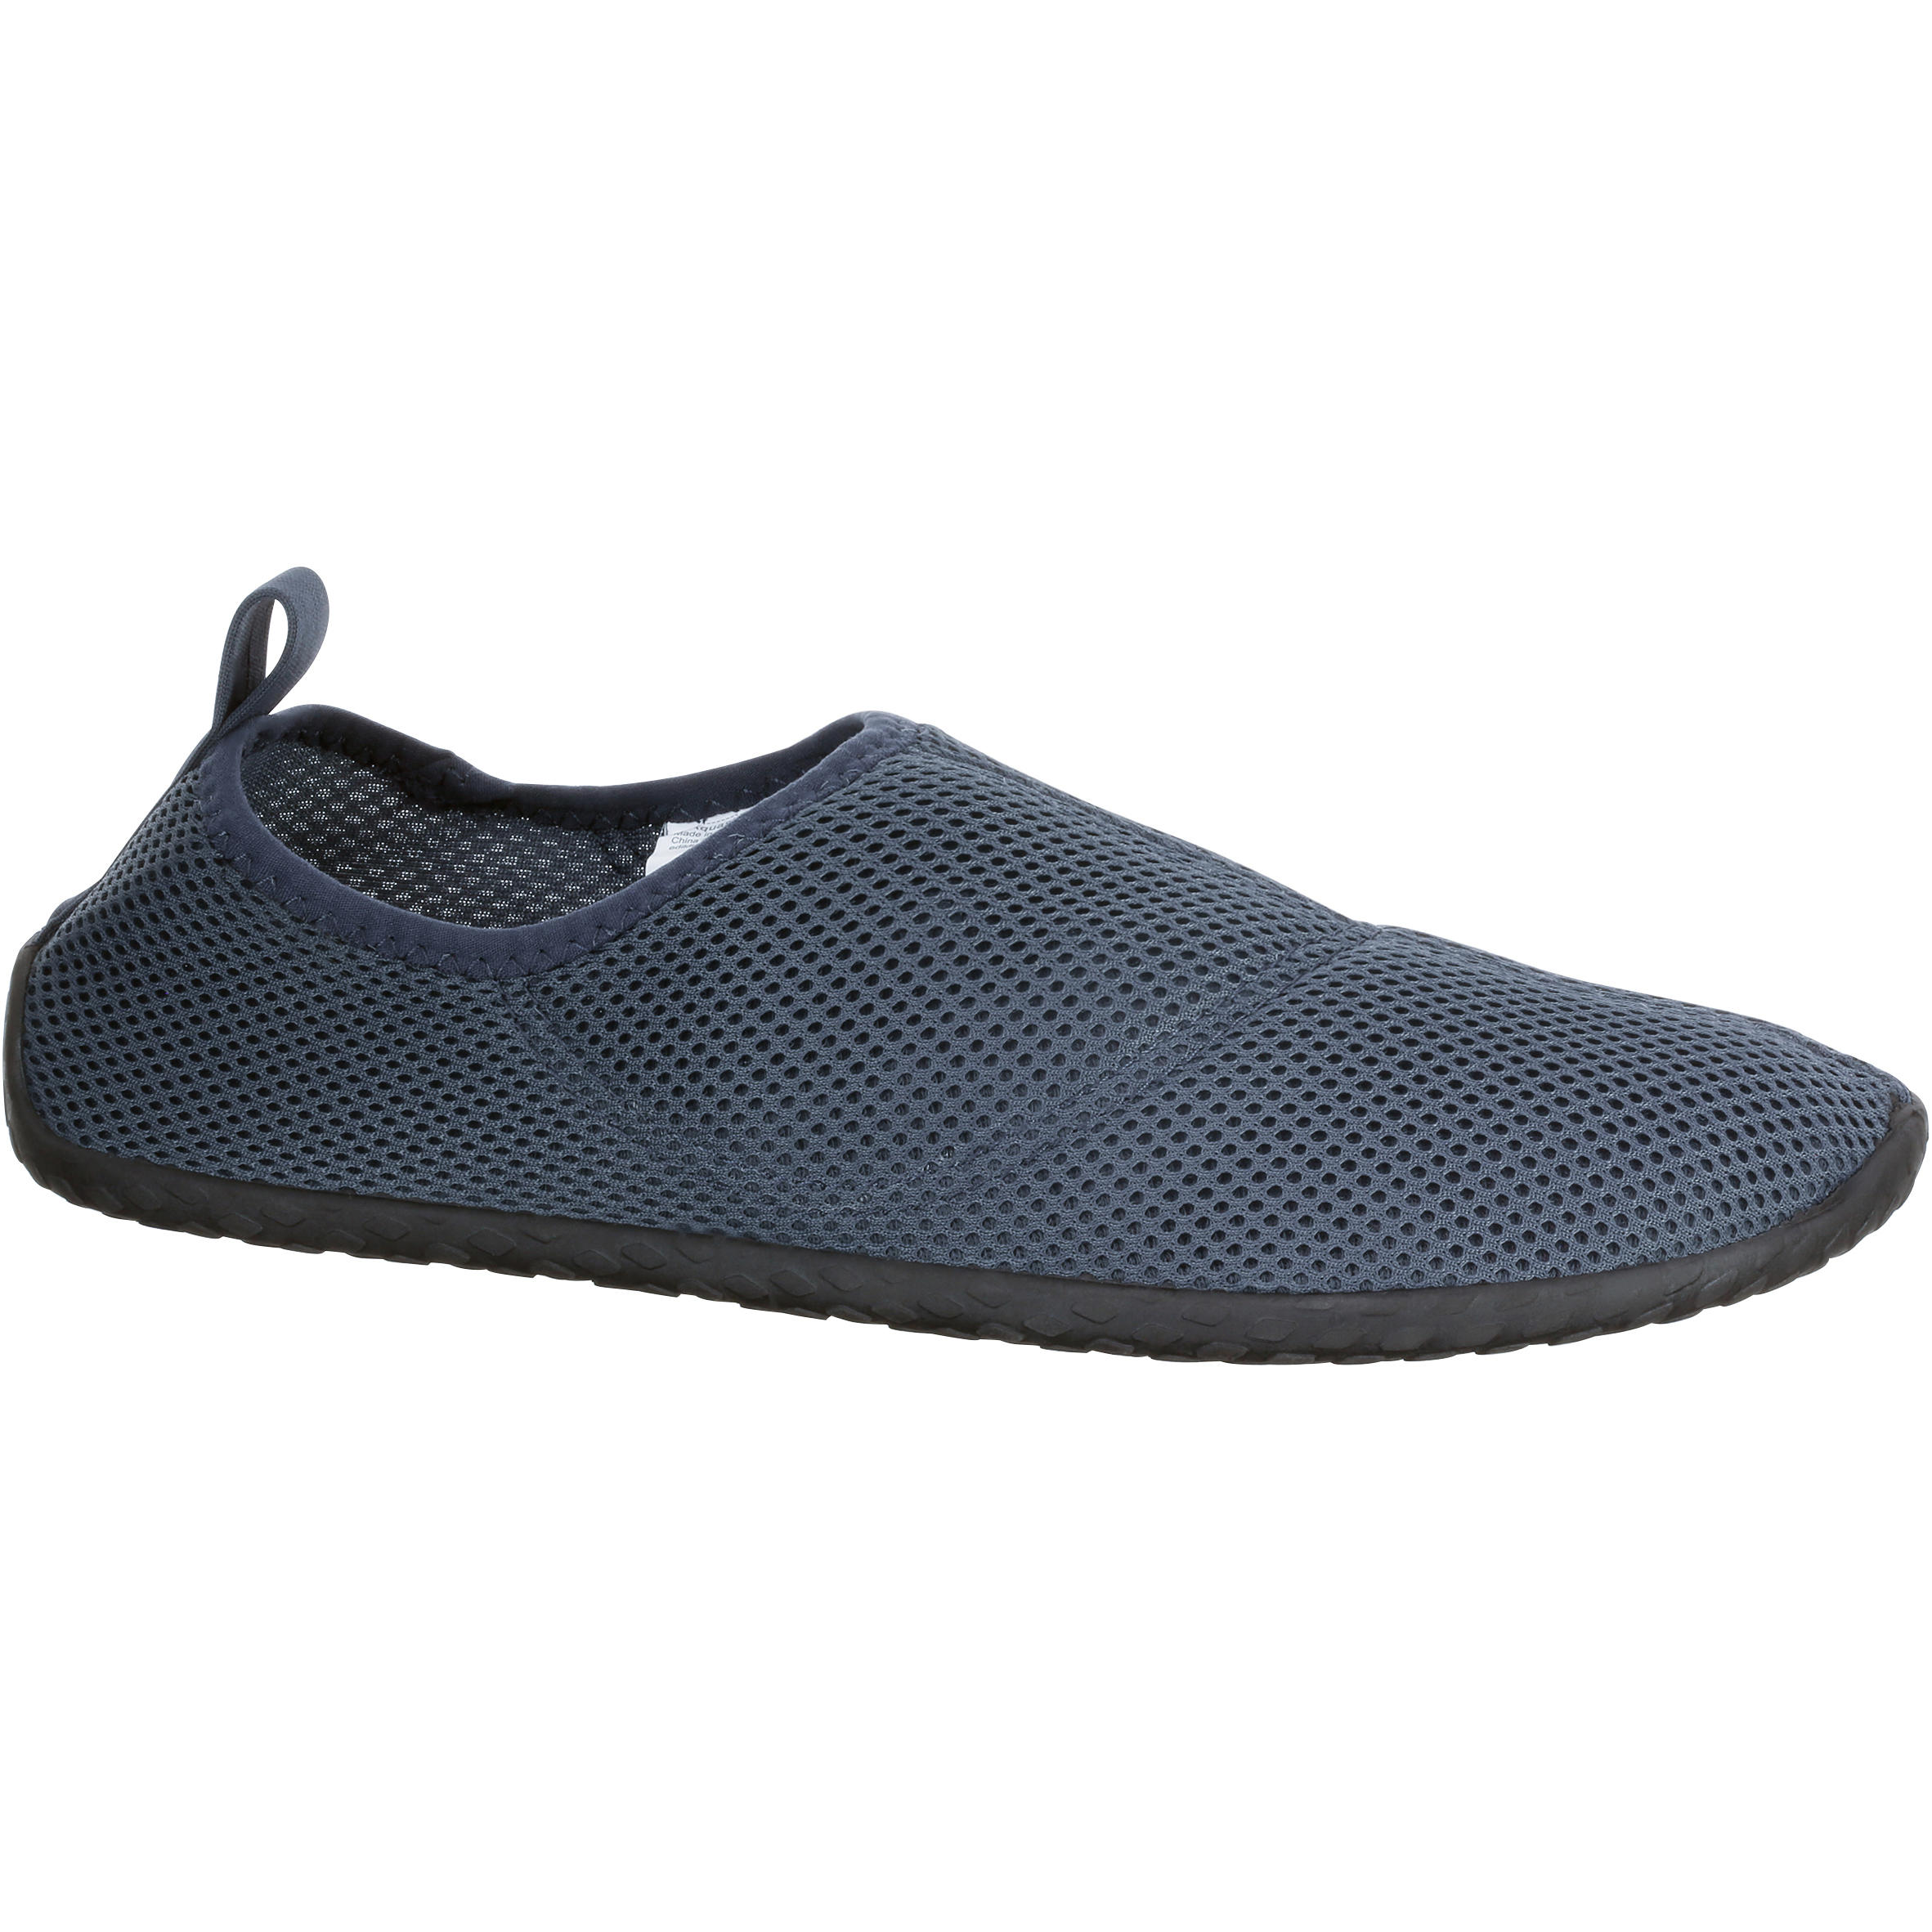 50 Aquashoes - Dark Grey